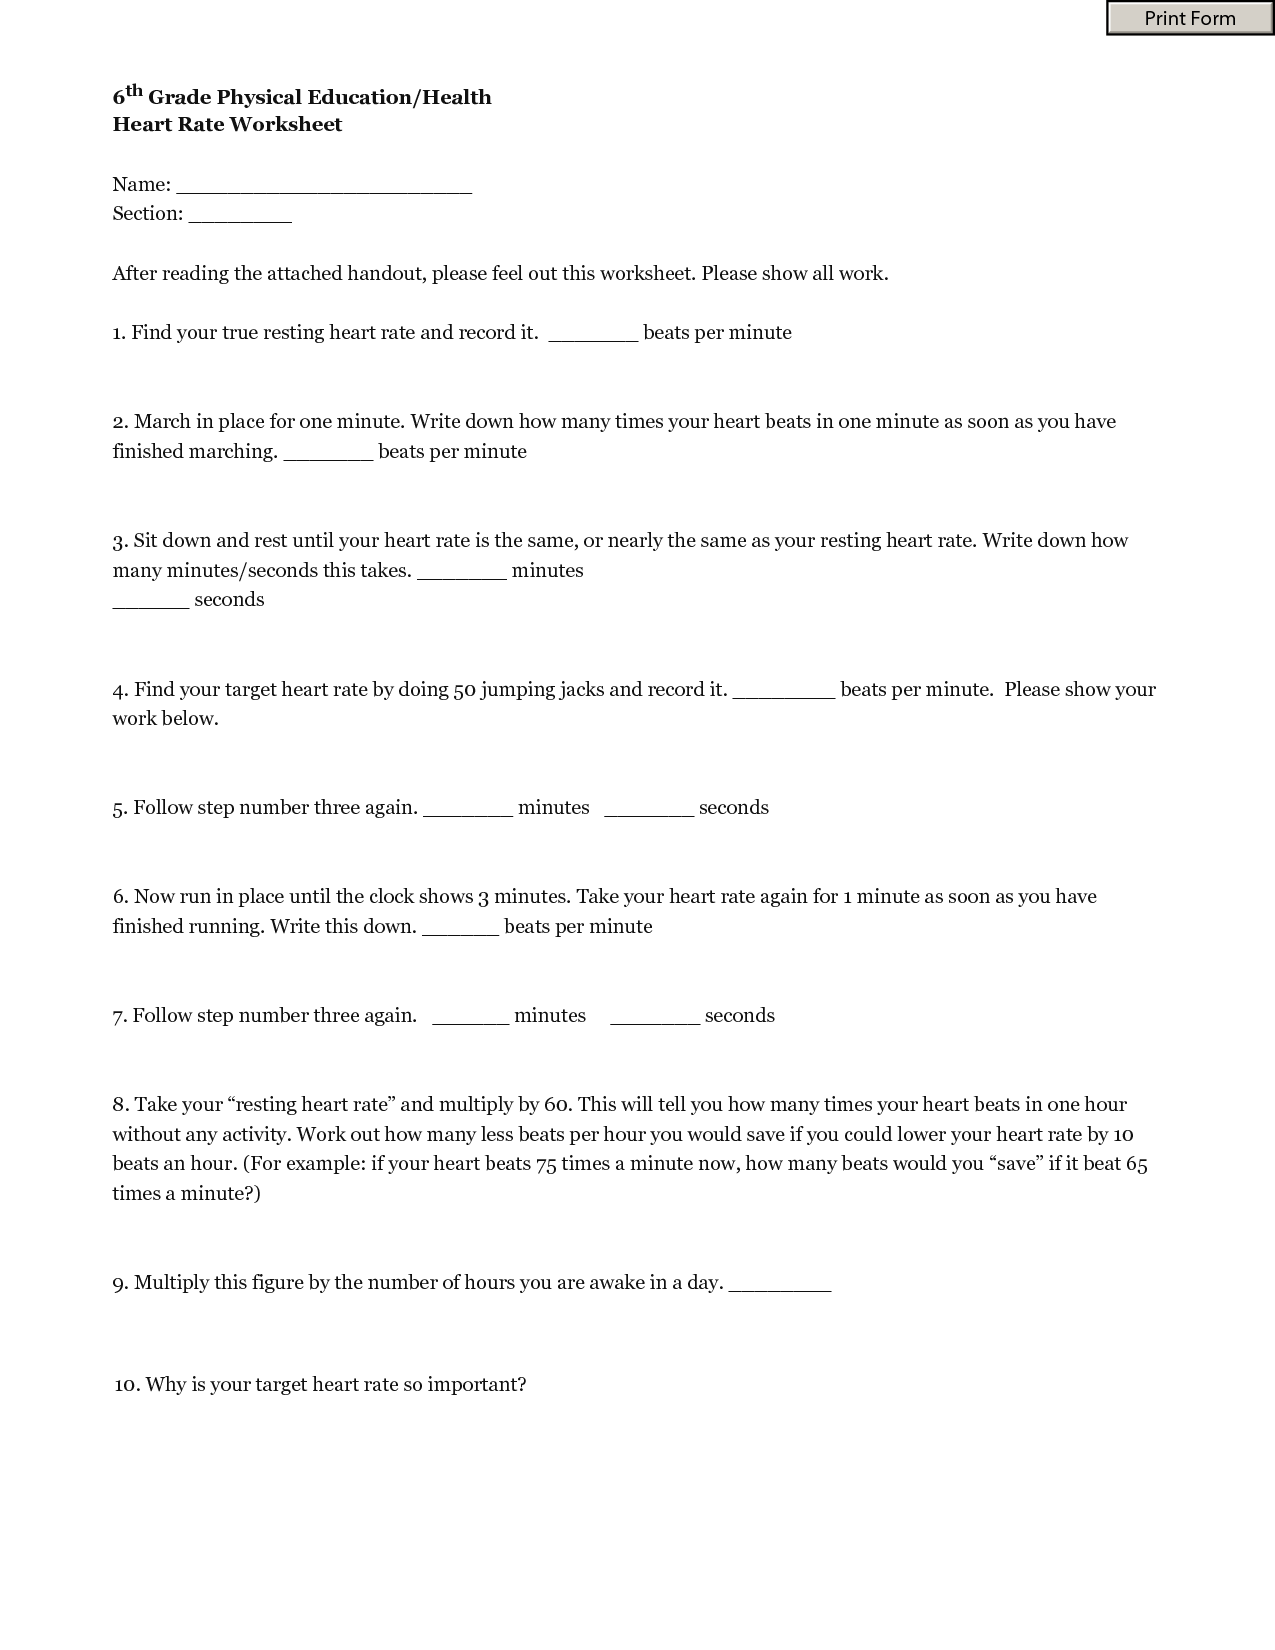 13 Best Images Of 6th Grade Health Class Worksheet